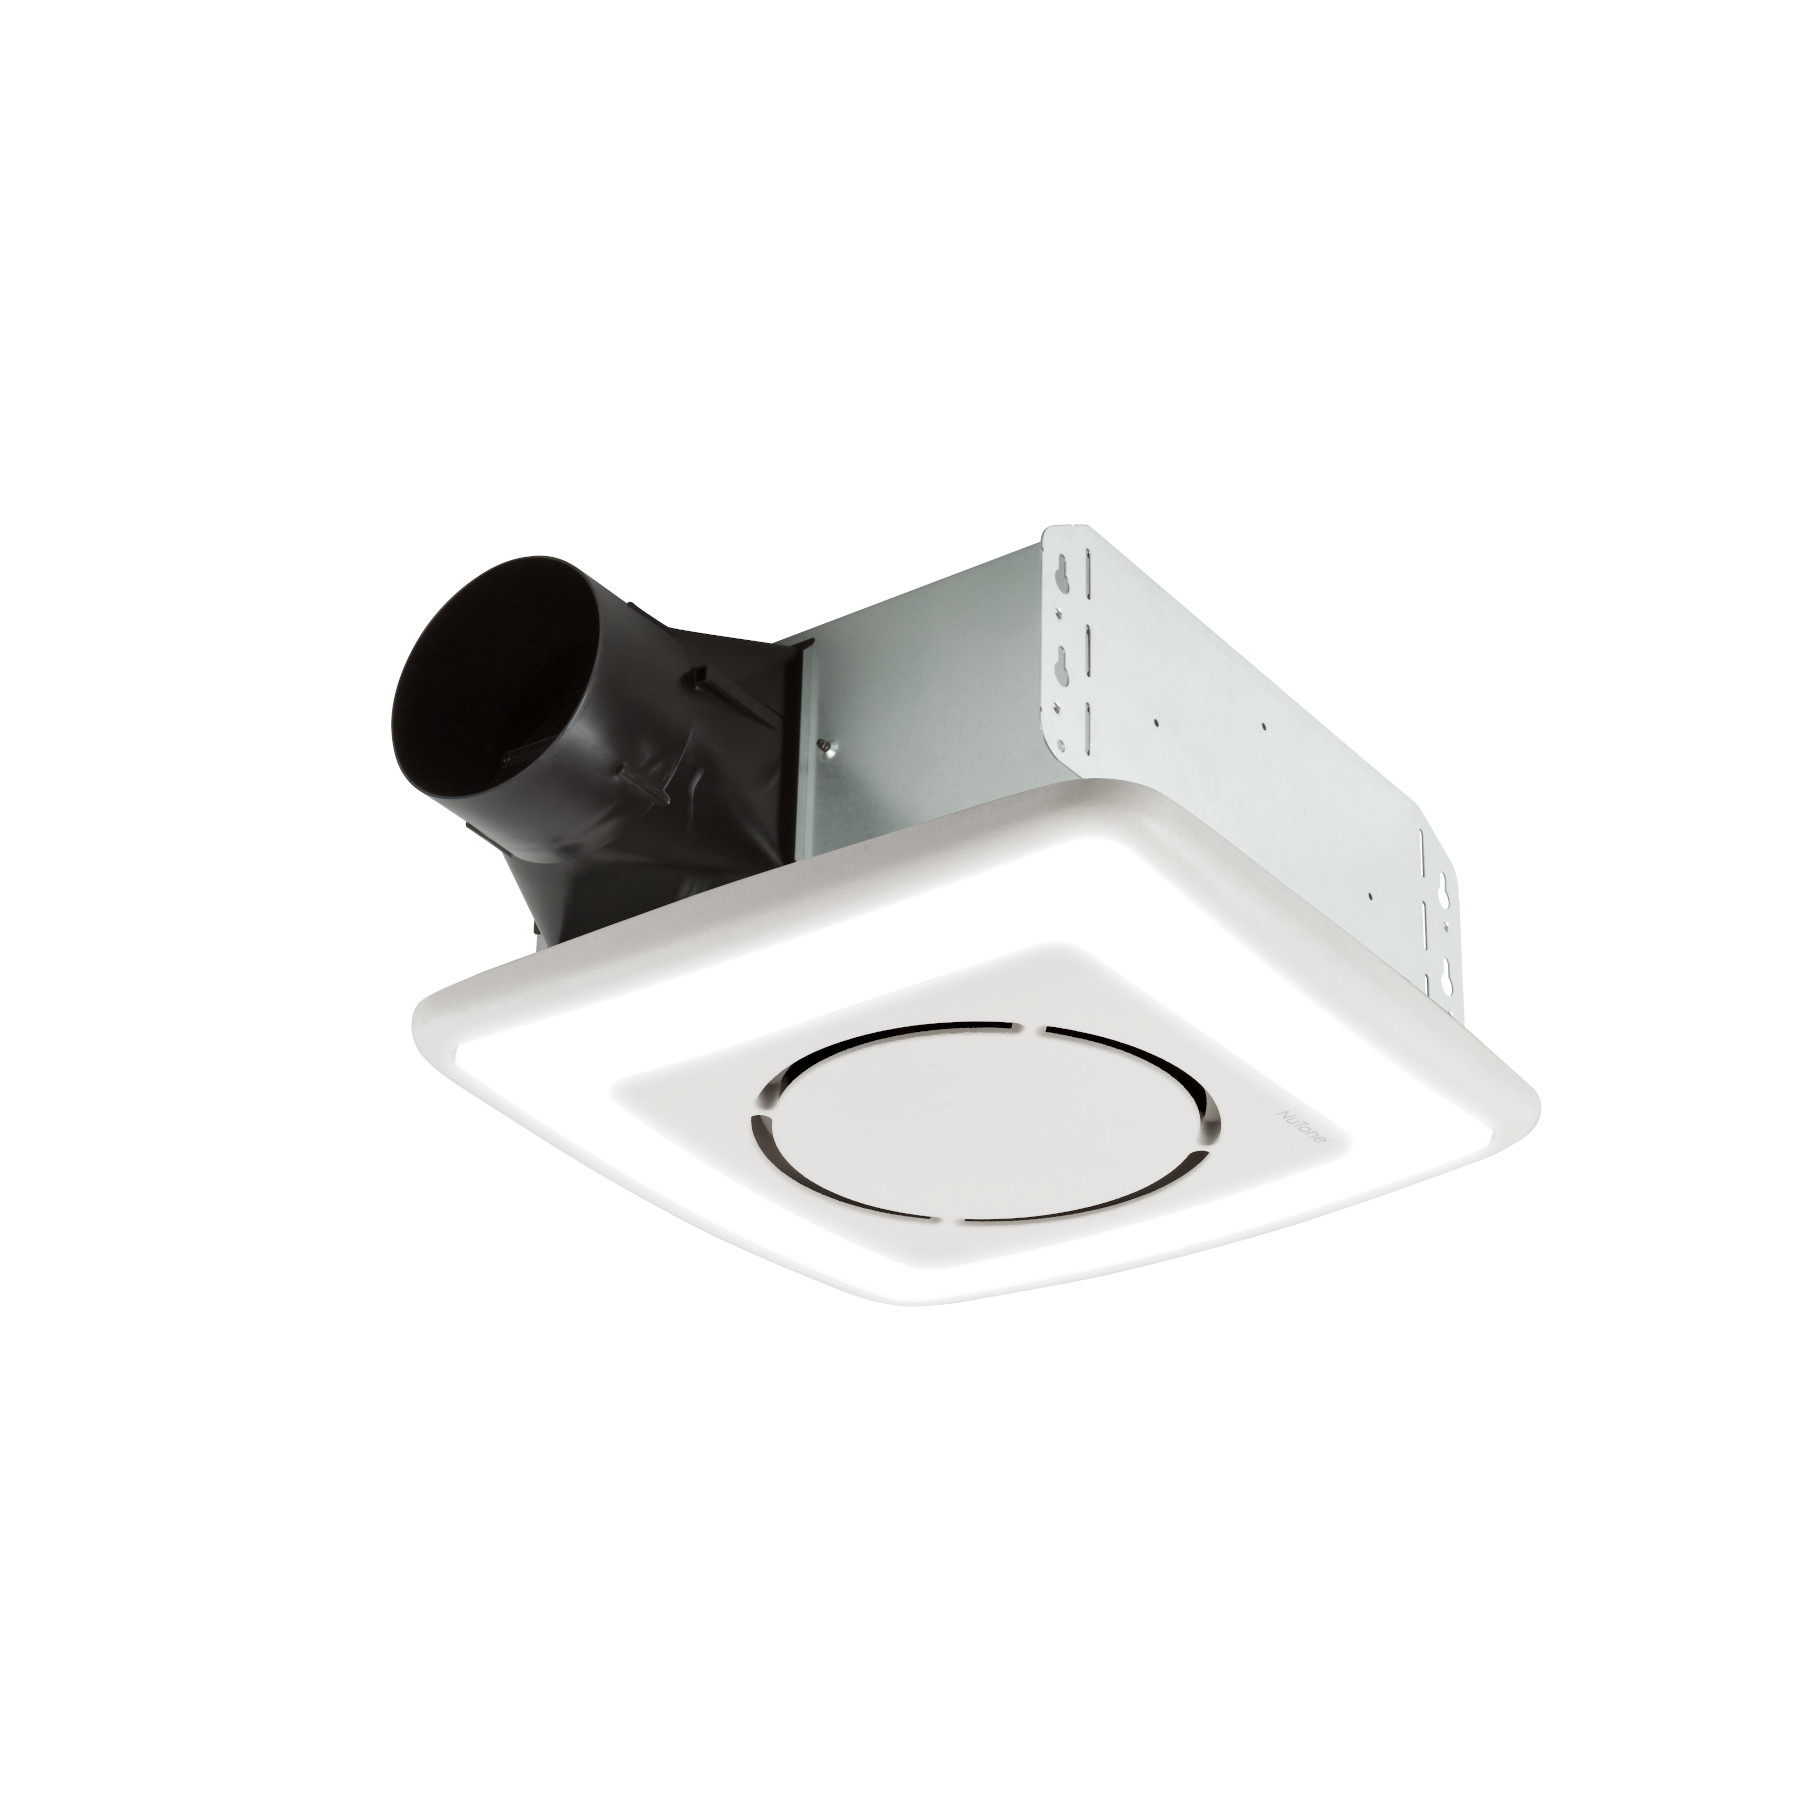 NuTone® 110 CFM Ventilation Fan with Soft Surround LED Lighting, 1.5 Sones; ENERGY STAR®